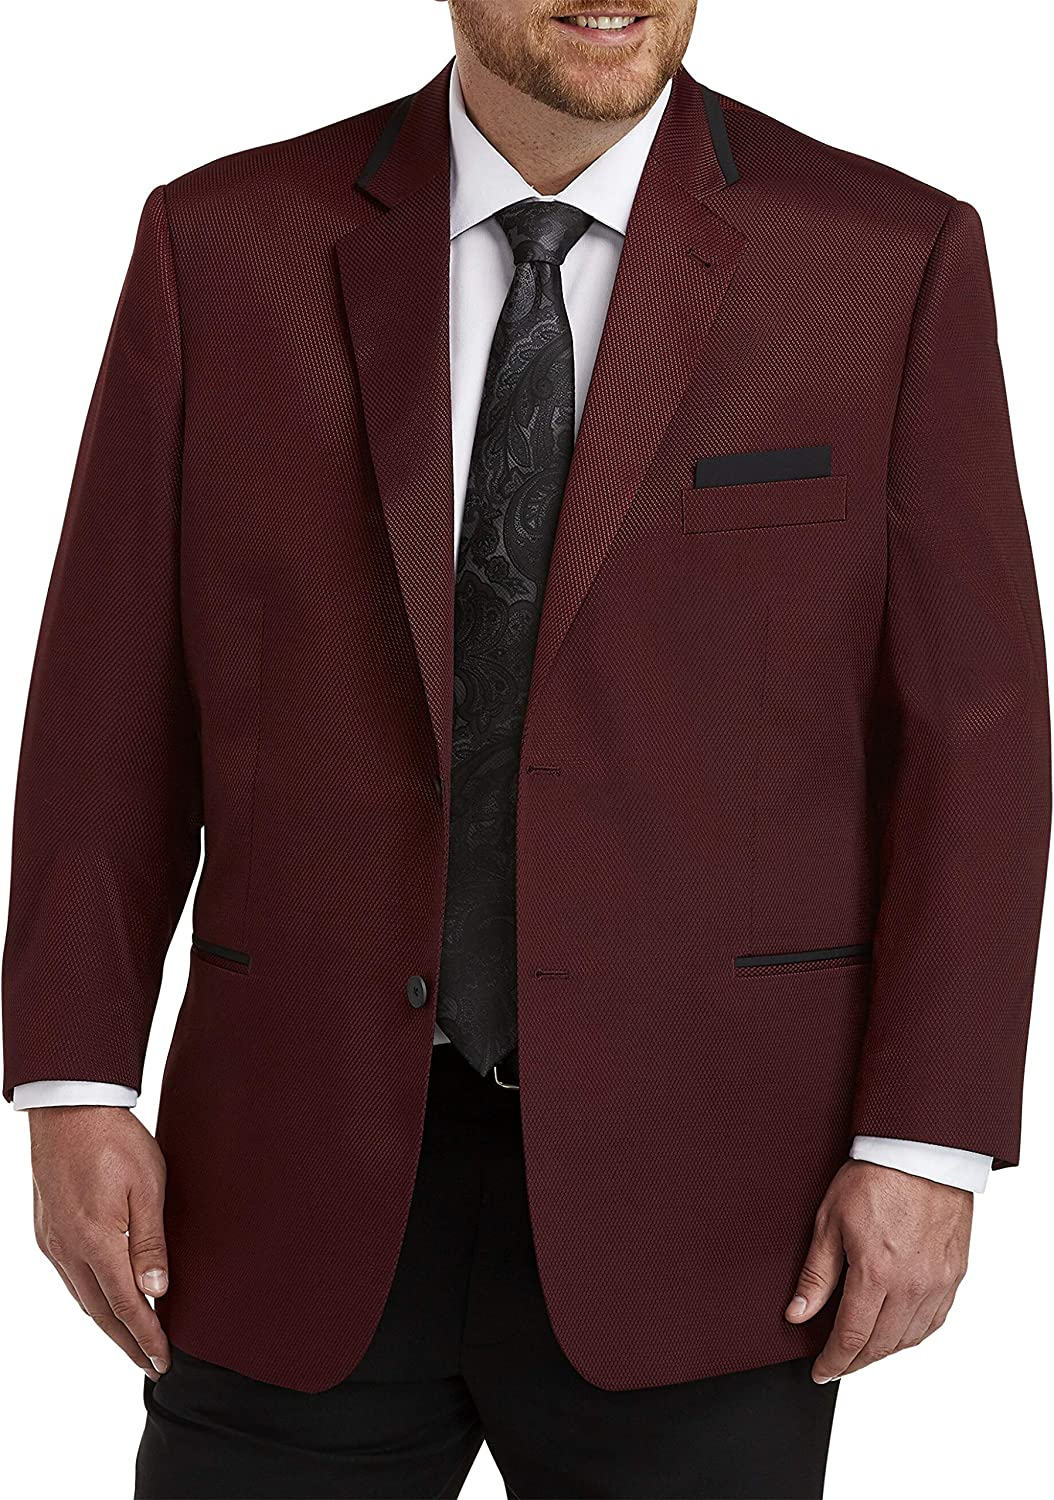 DXL Synrgy Big and Tall Neat Dinner Jacket, Burgundy